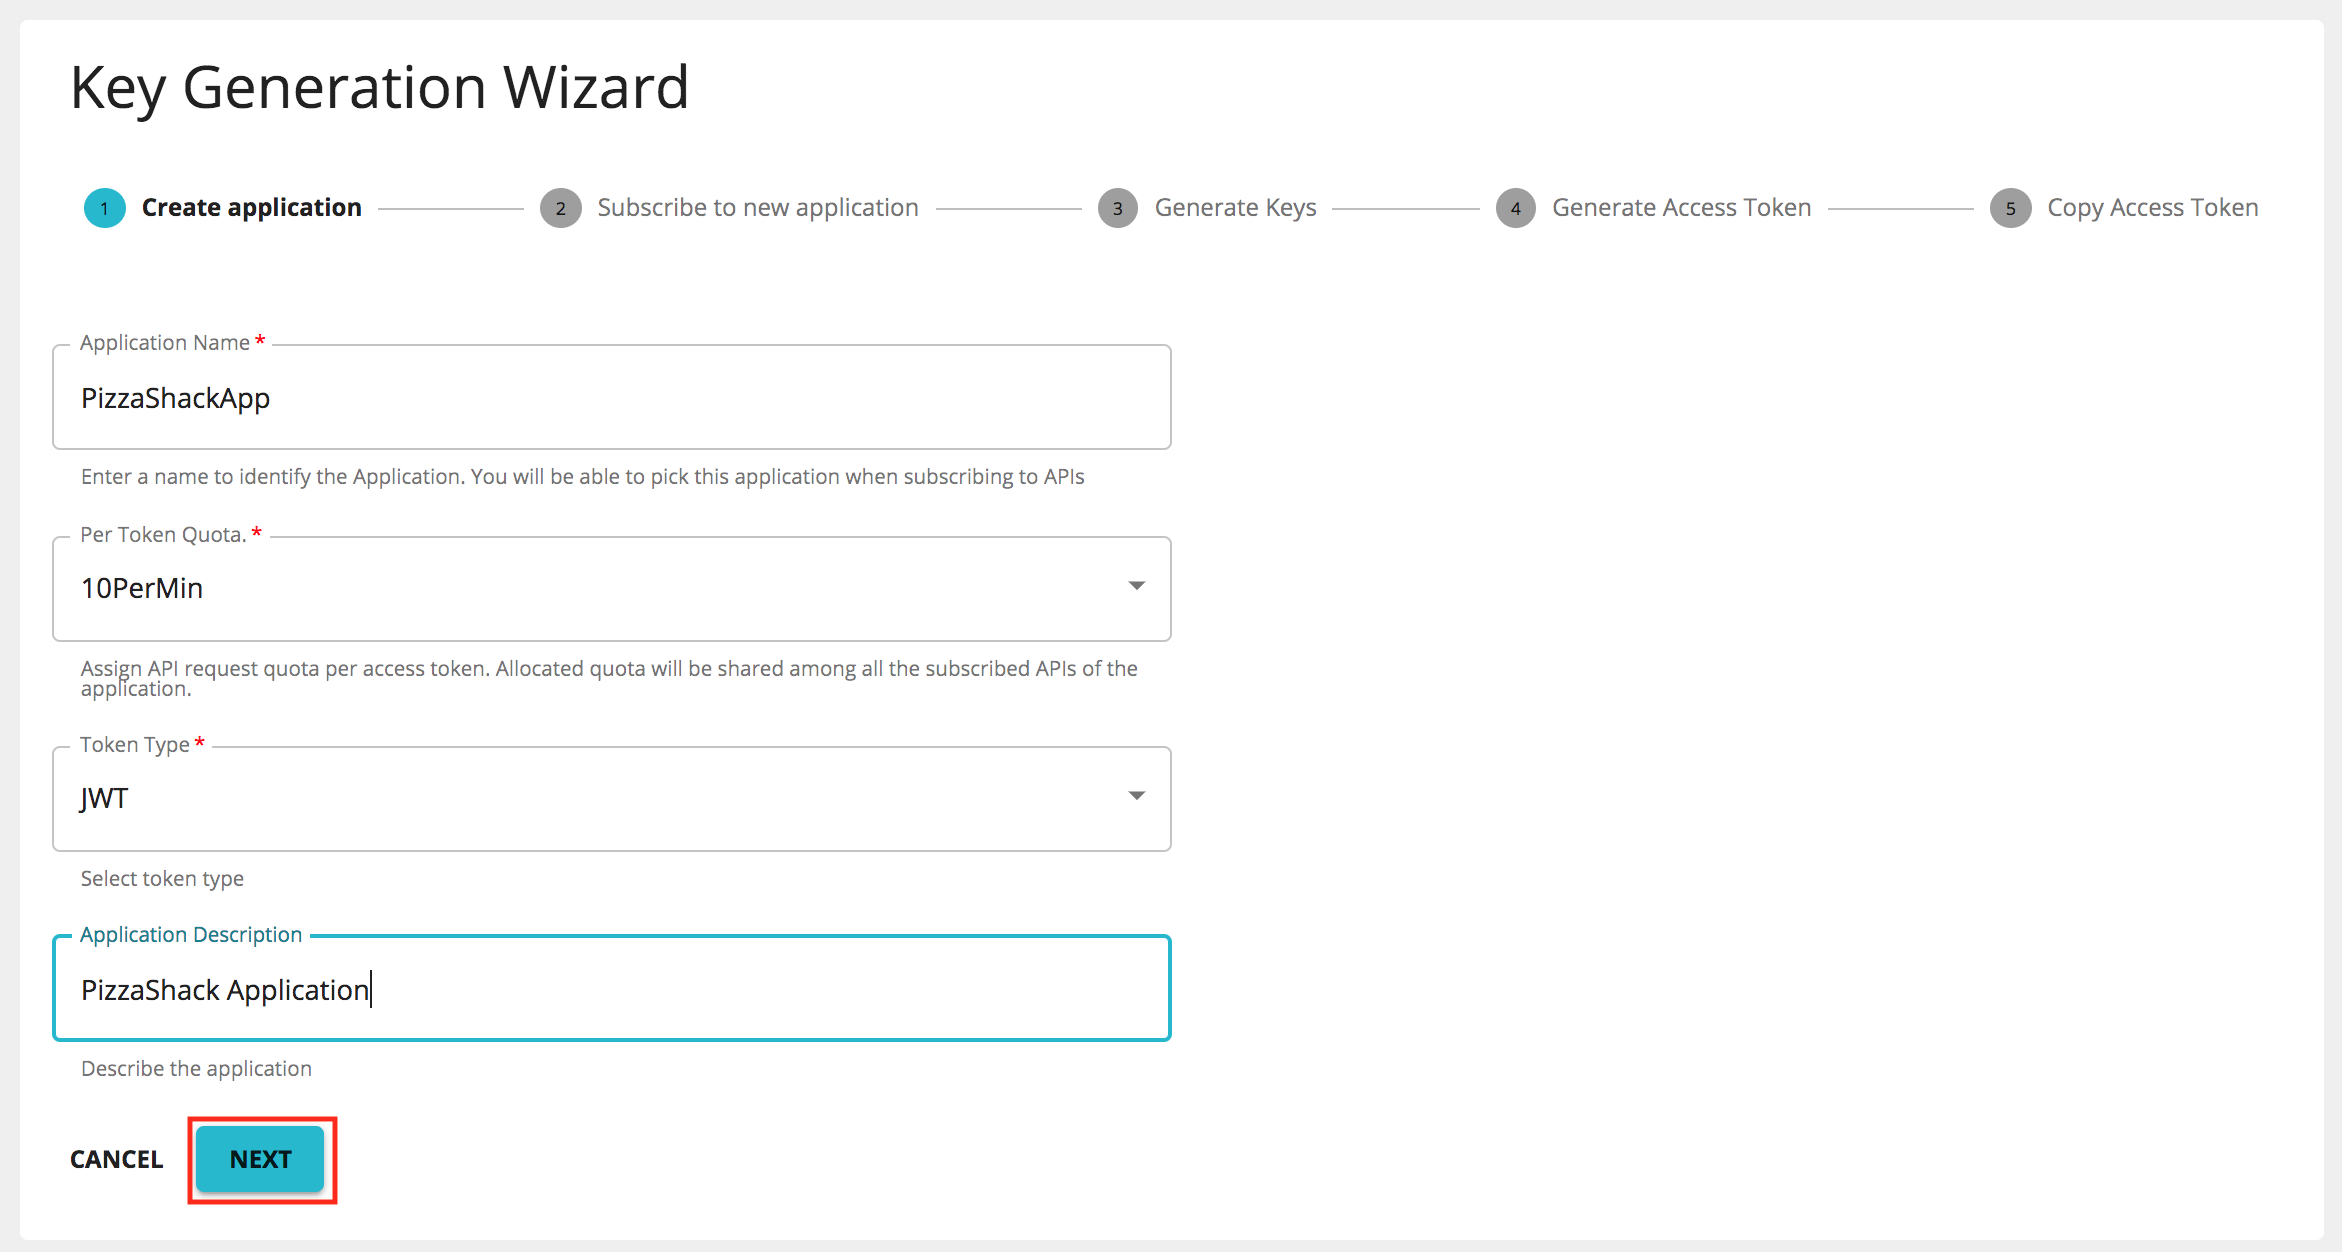 Create application process in the wizard